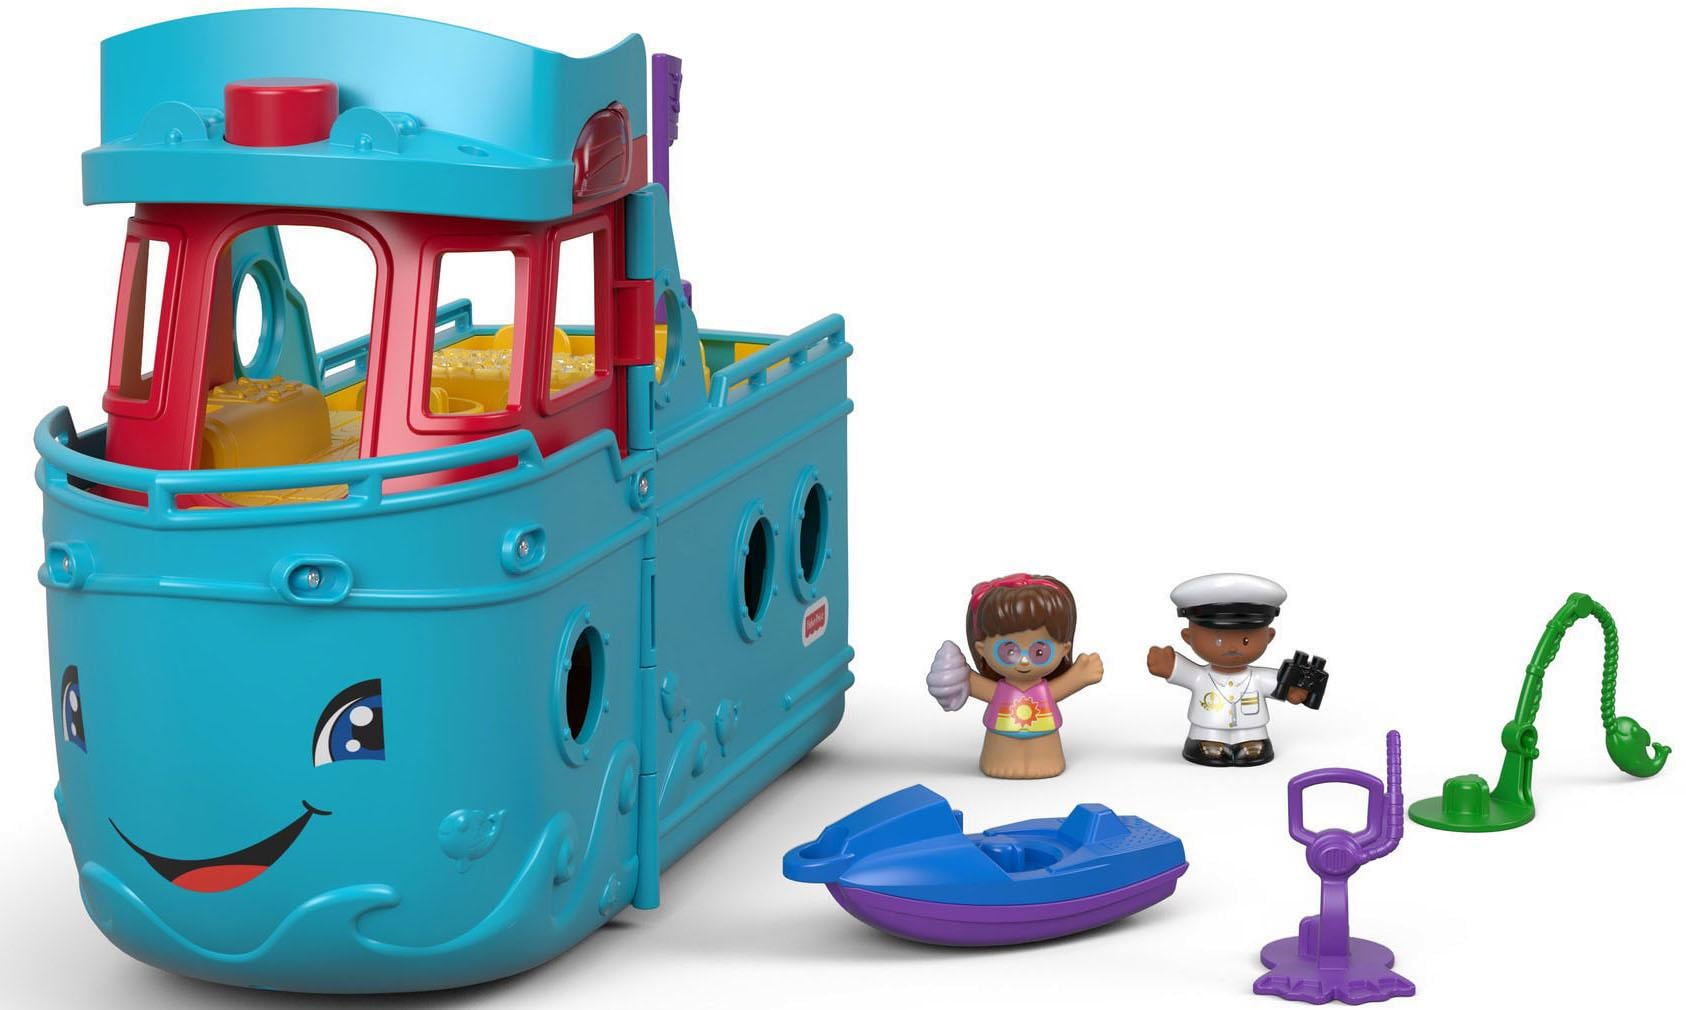 Fisher Price 2-in-1 Spielschiff Little People Schiff Kindermode/Spielzeug/Autos, Eisenbahn & Modellbau/Spielzeugautos/Weitere Spielzeugautos